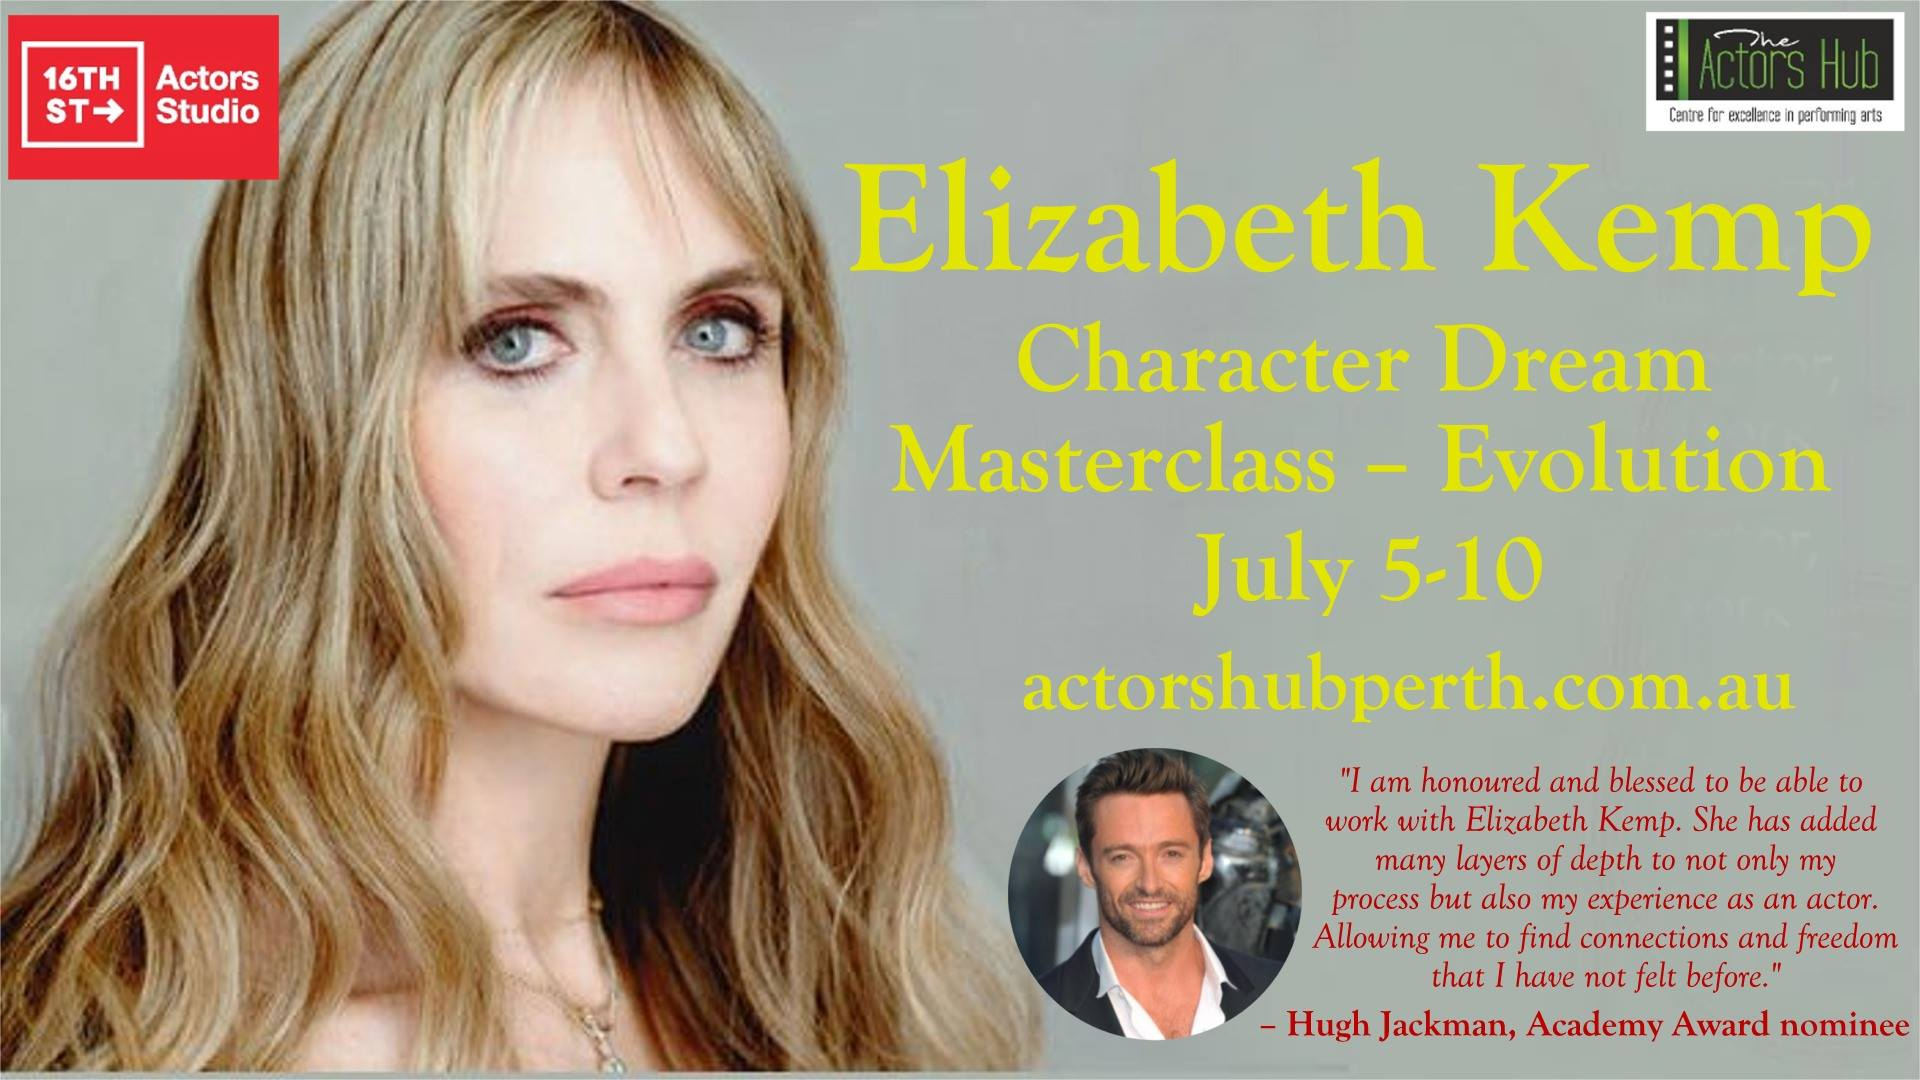 Hugh Jackman's acting coach in Perth to deliver masterclass